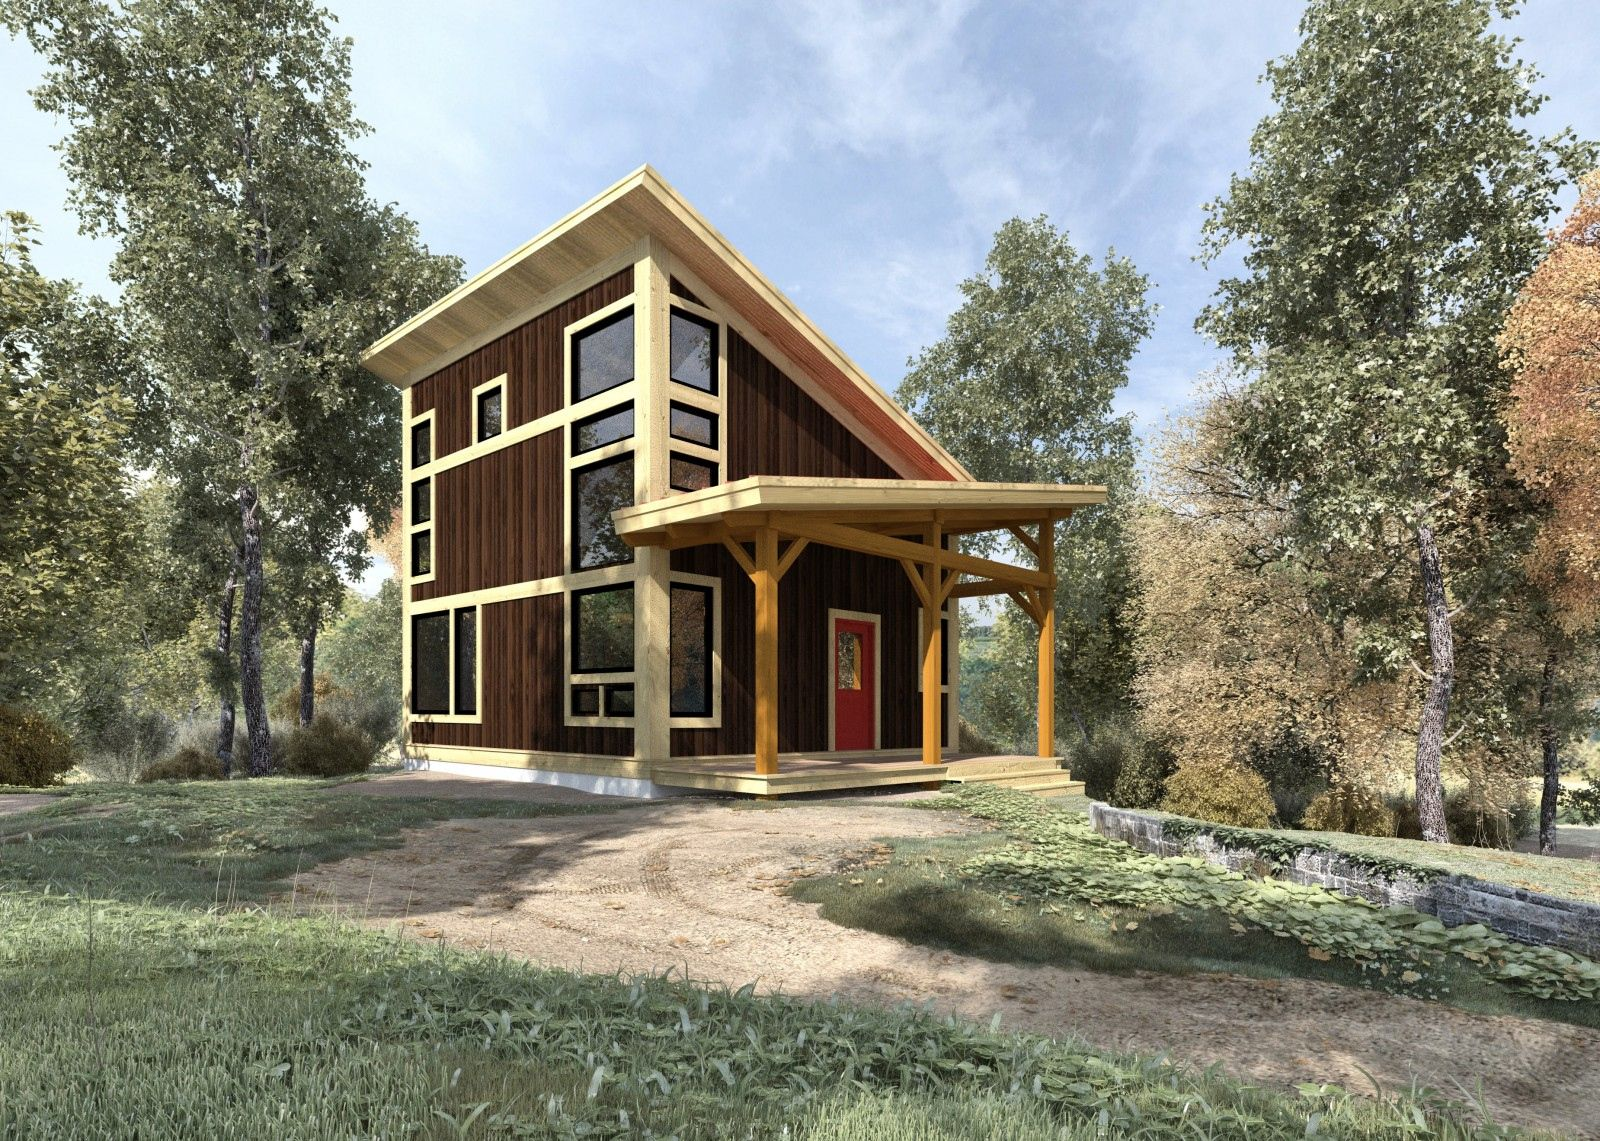 Best Of Small Timber Frame Homes Kits Check more at http://www ...